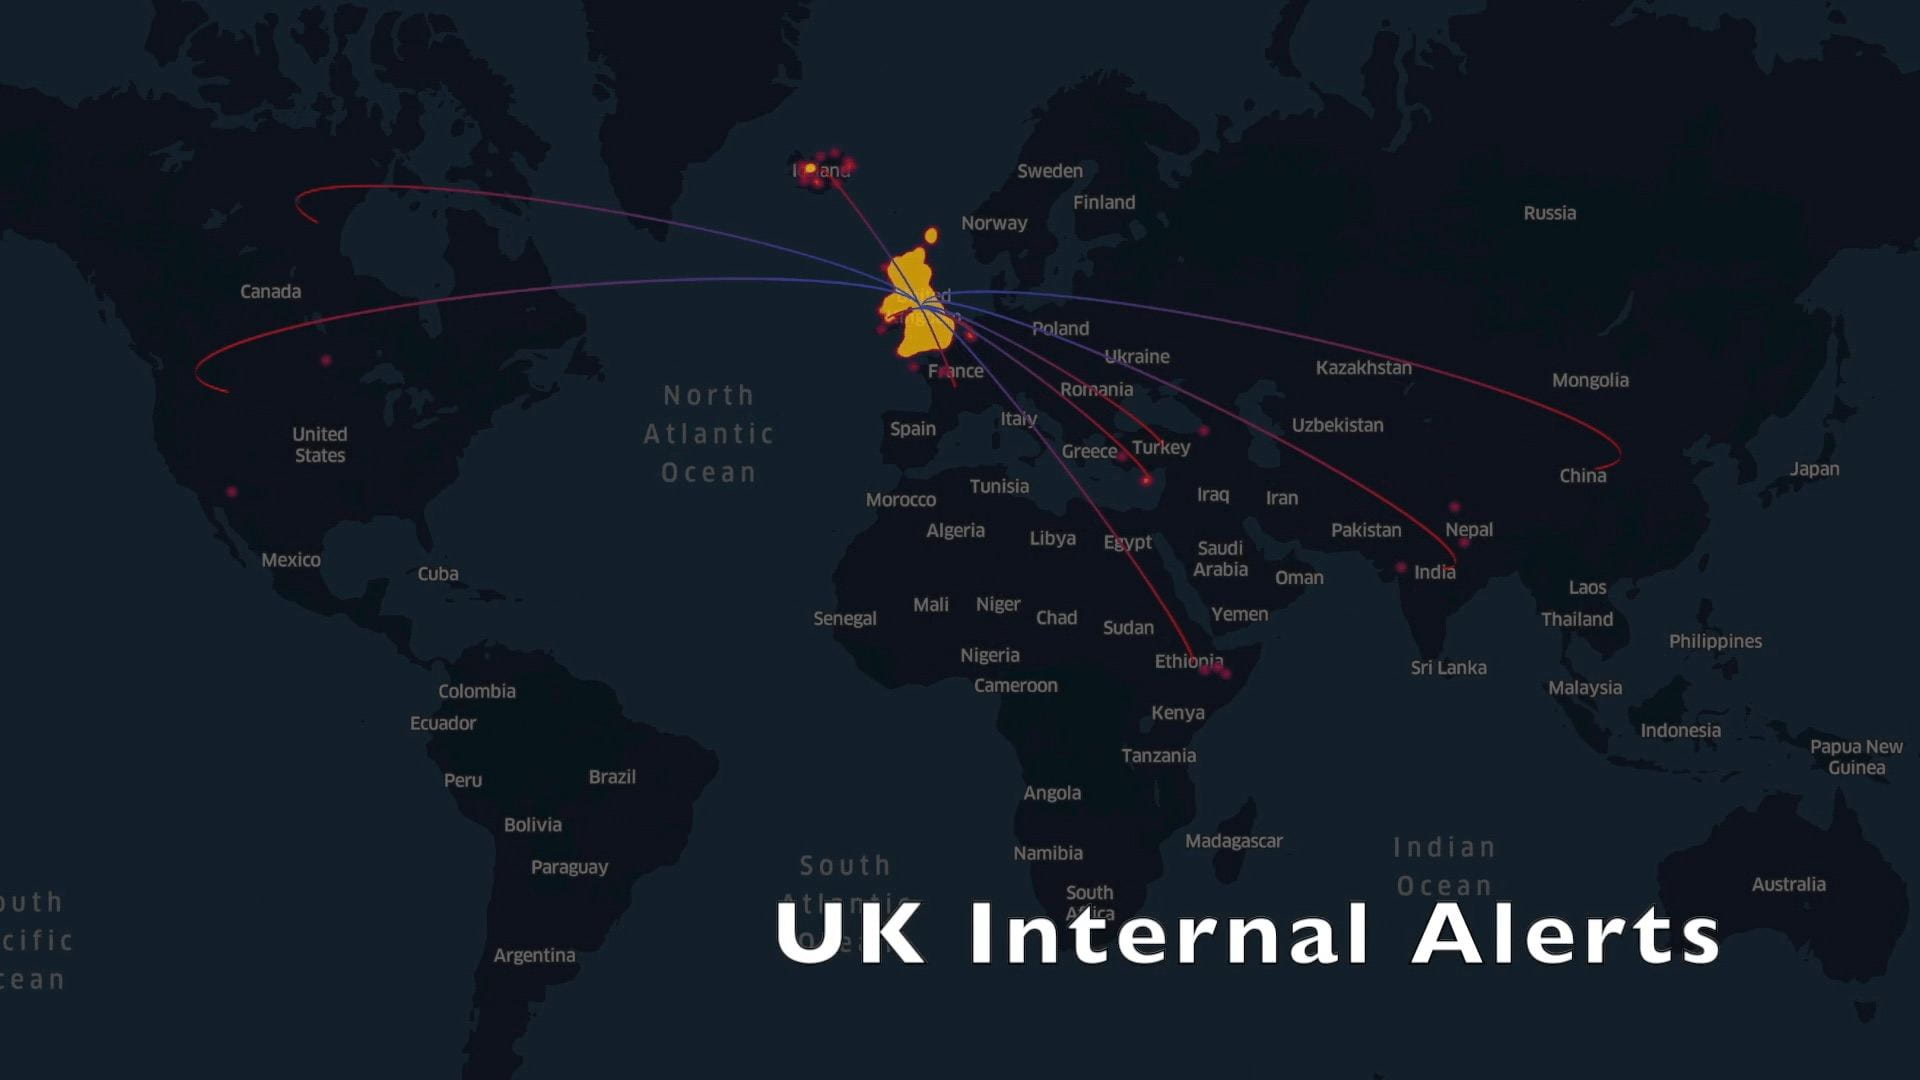 Map of the world where lines between the UK and other countries indicate the 8 countries where alerts from the UK Internal alerts have originated from